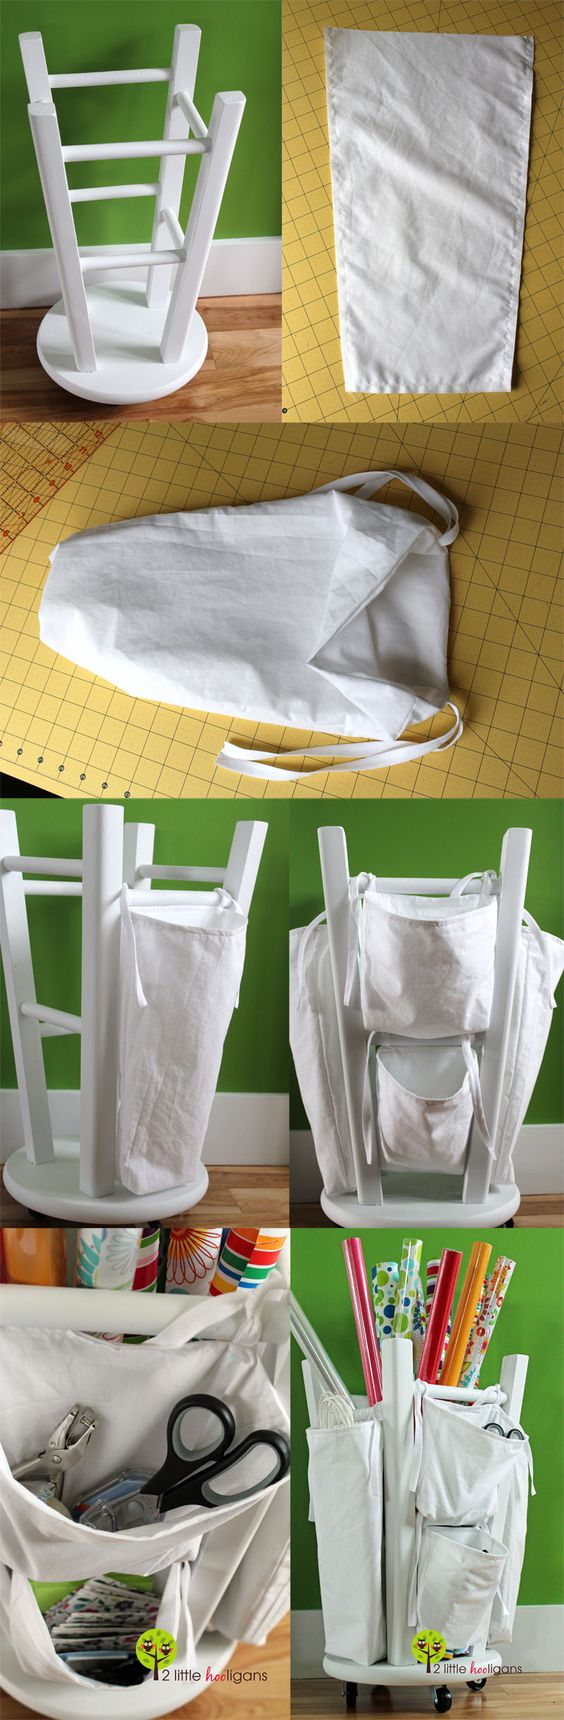 DIY :: Upside down stool - Wrapping Paper Organizer ( http://www.2littlehooligans.com/2012/06/08/fat-quarter-friday-wrapping-paper-organizer-tutorial/ ):